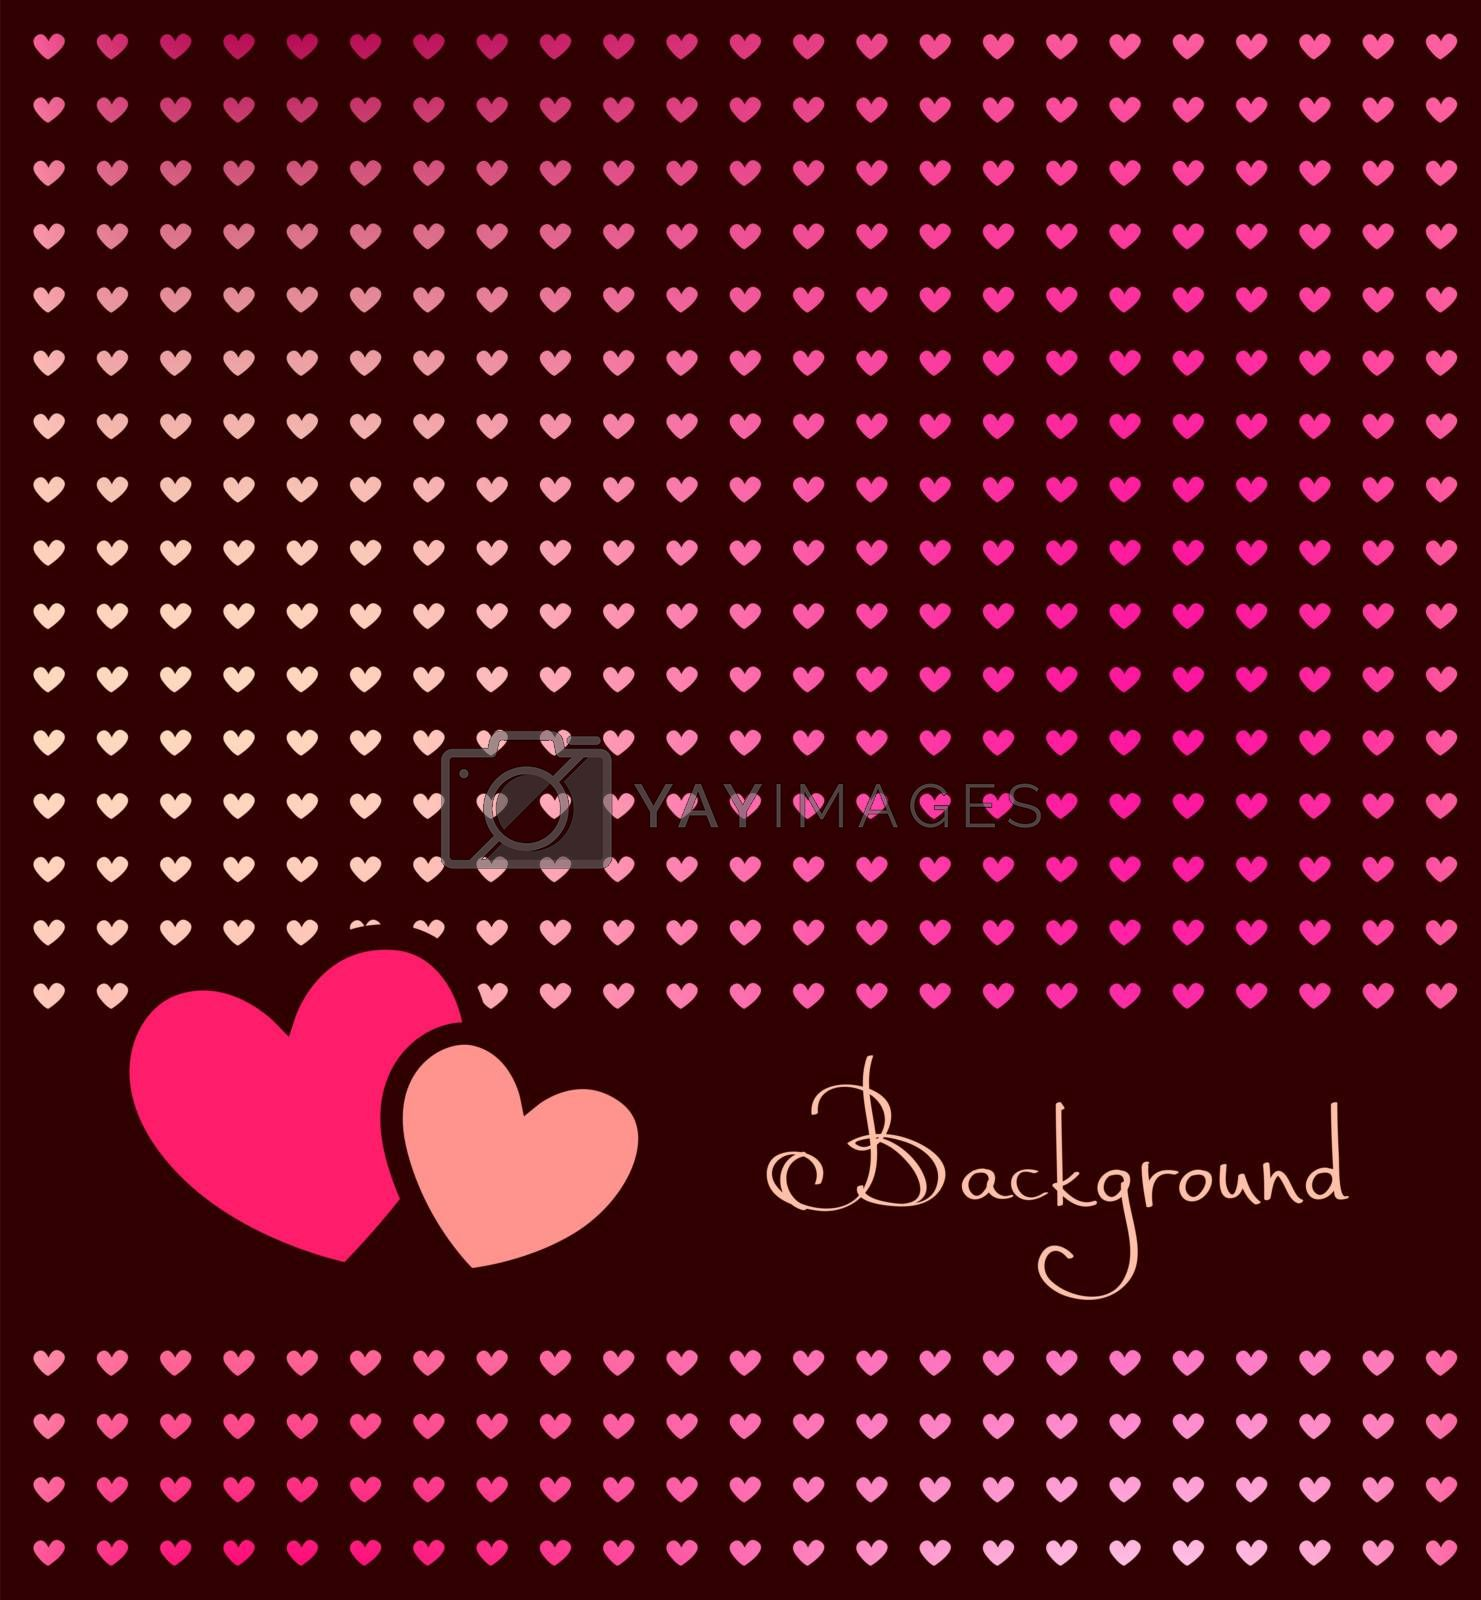 dark background with frame and hearts, vector illustration